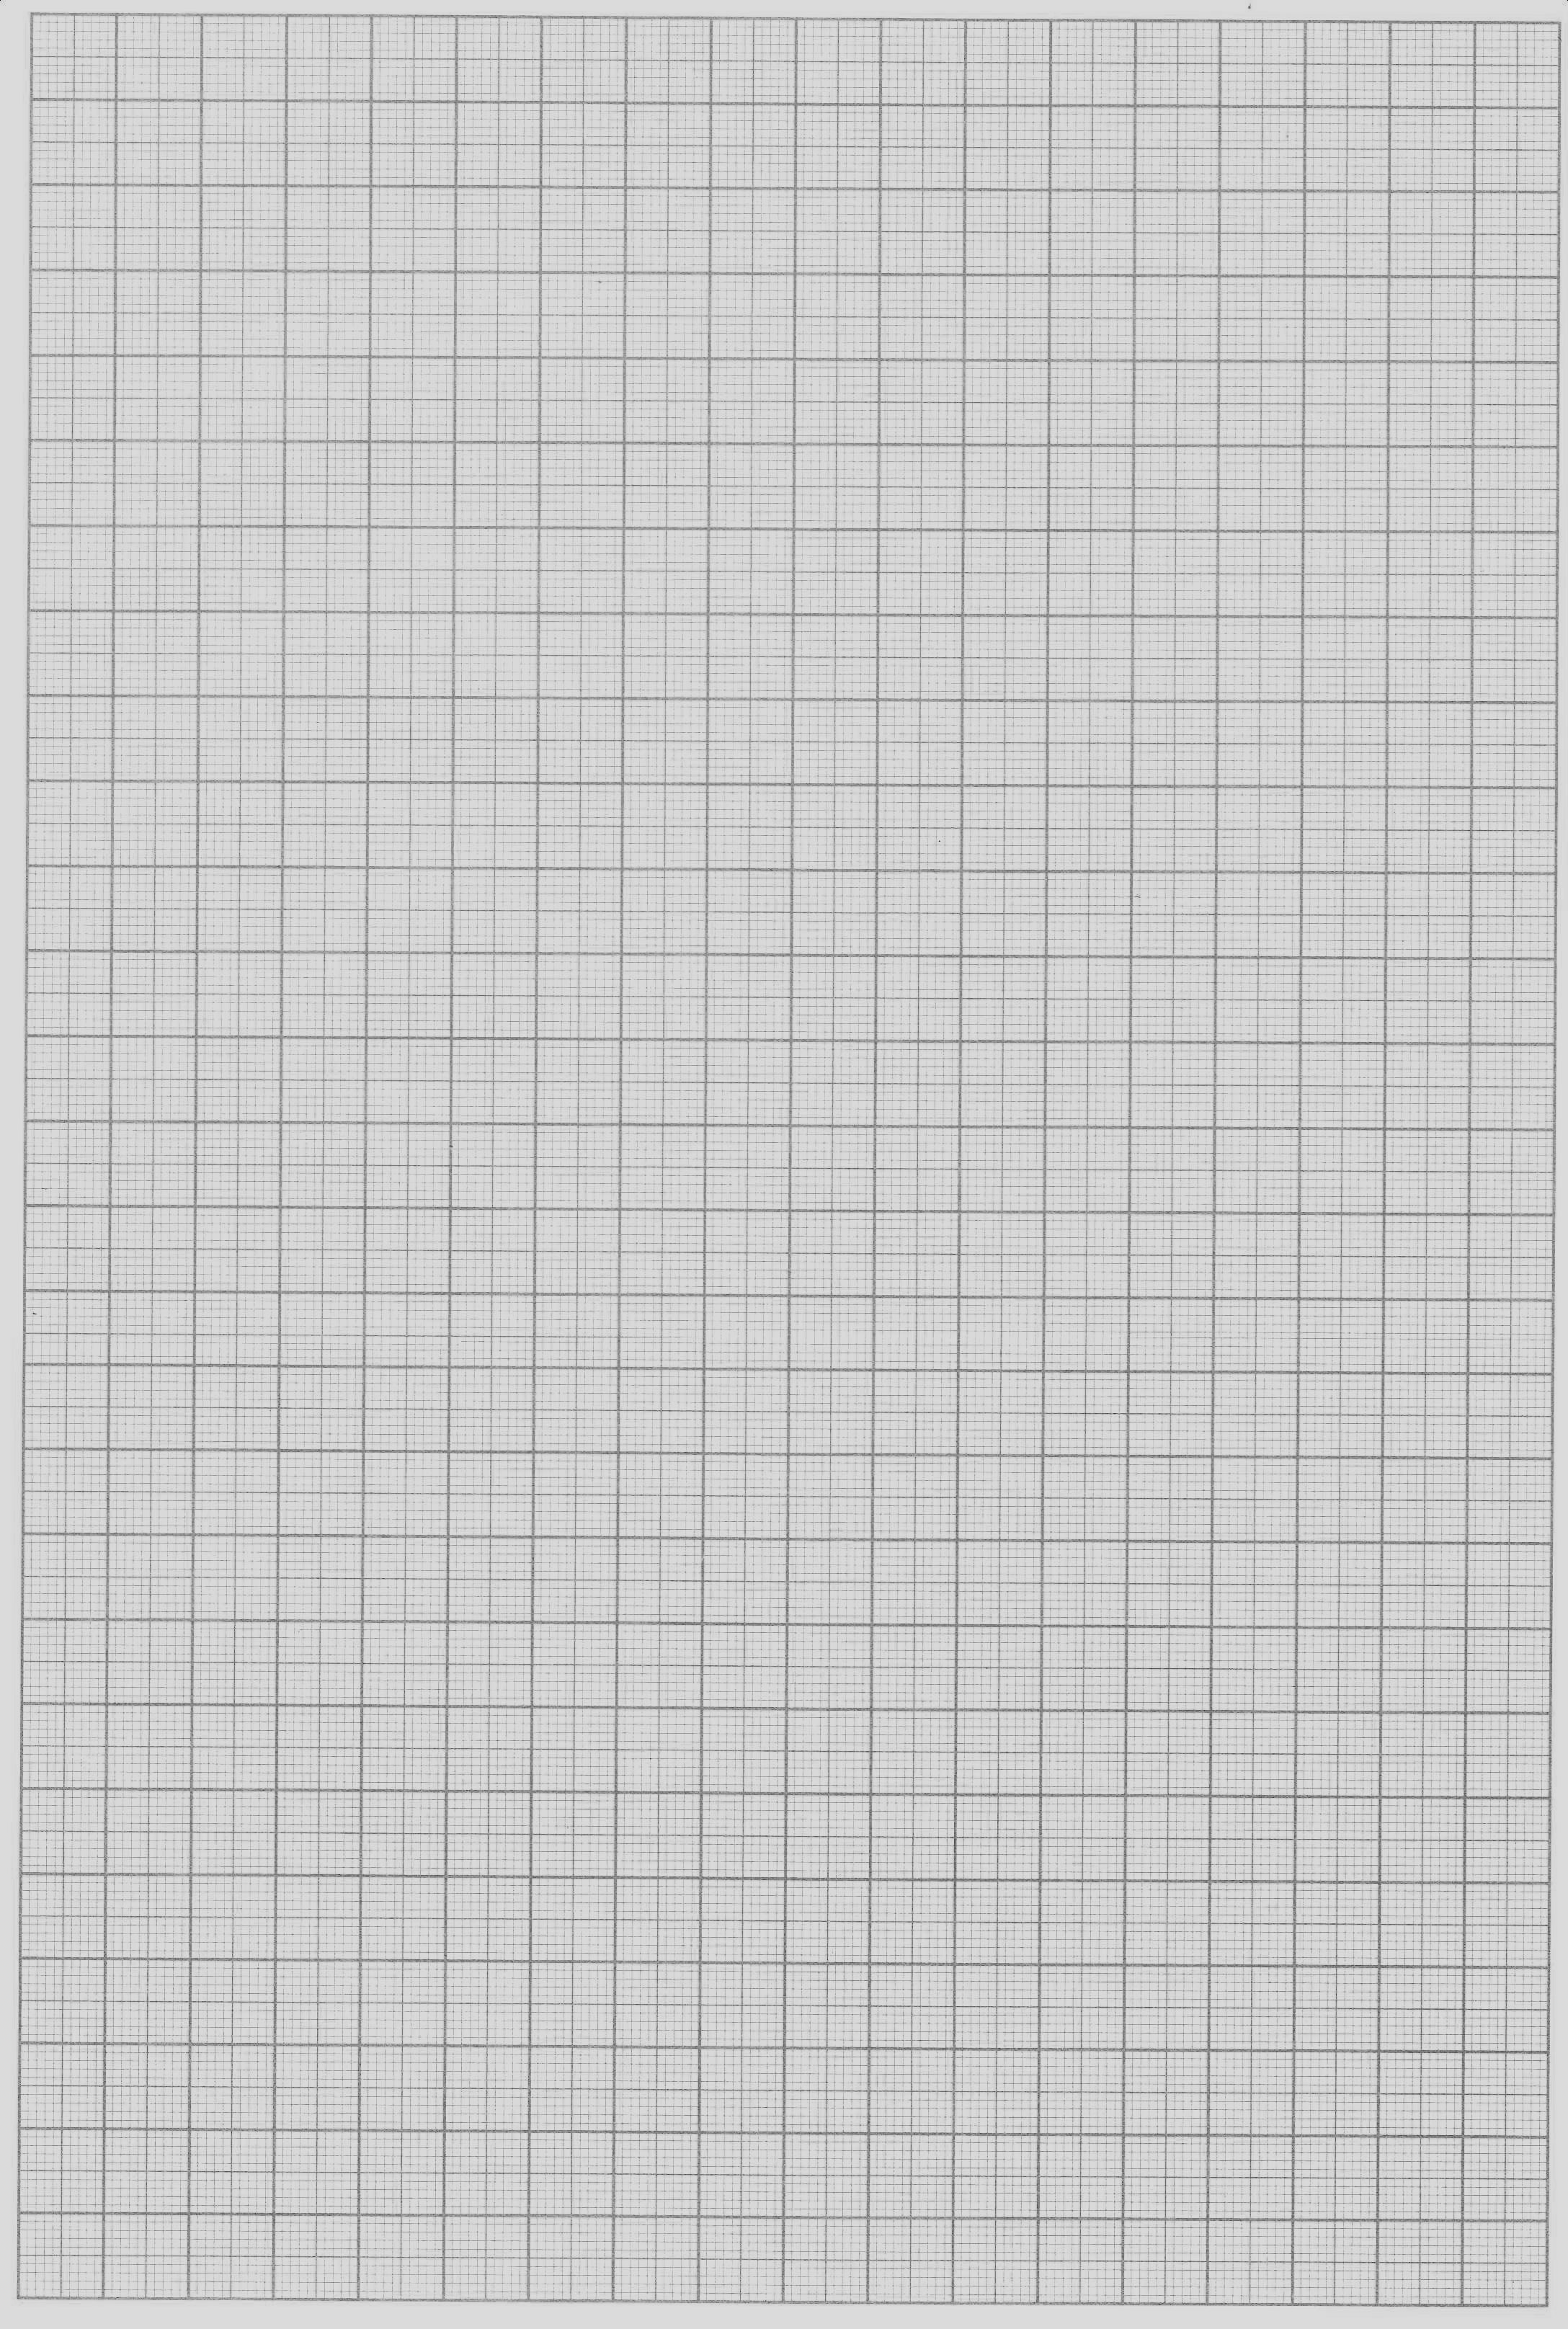 Upload for Online graph paper design tool